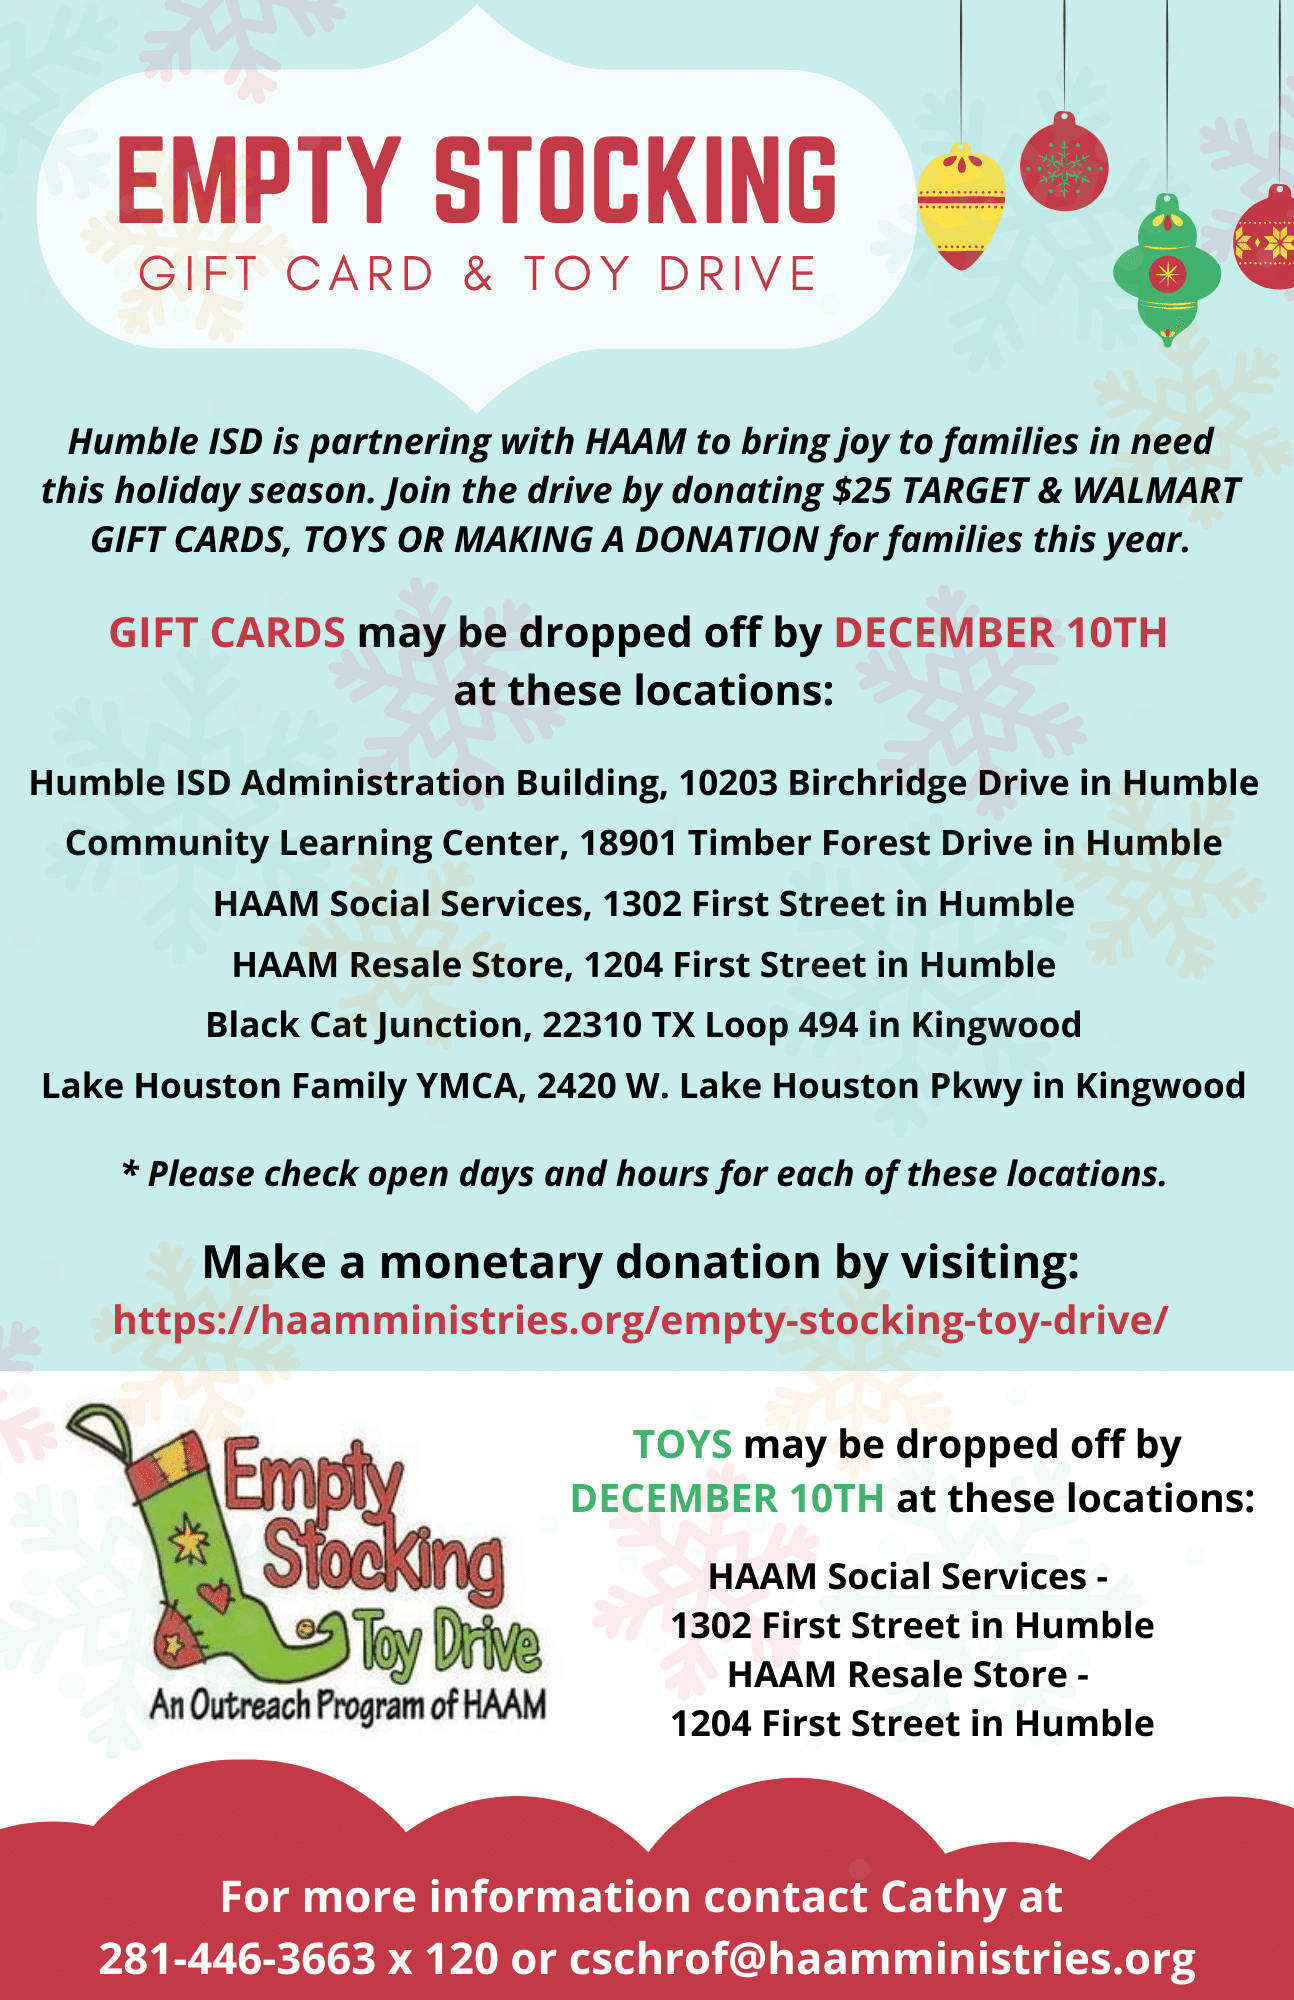 Humble ISD Toy And Gift Card Drive For Empty Stocking (1)